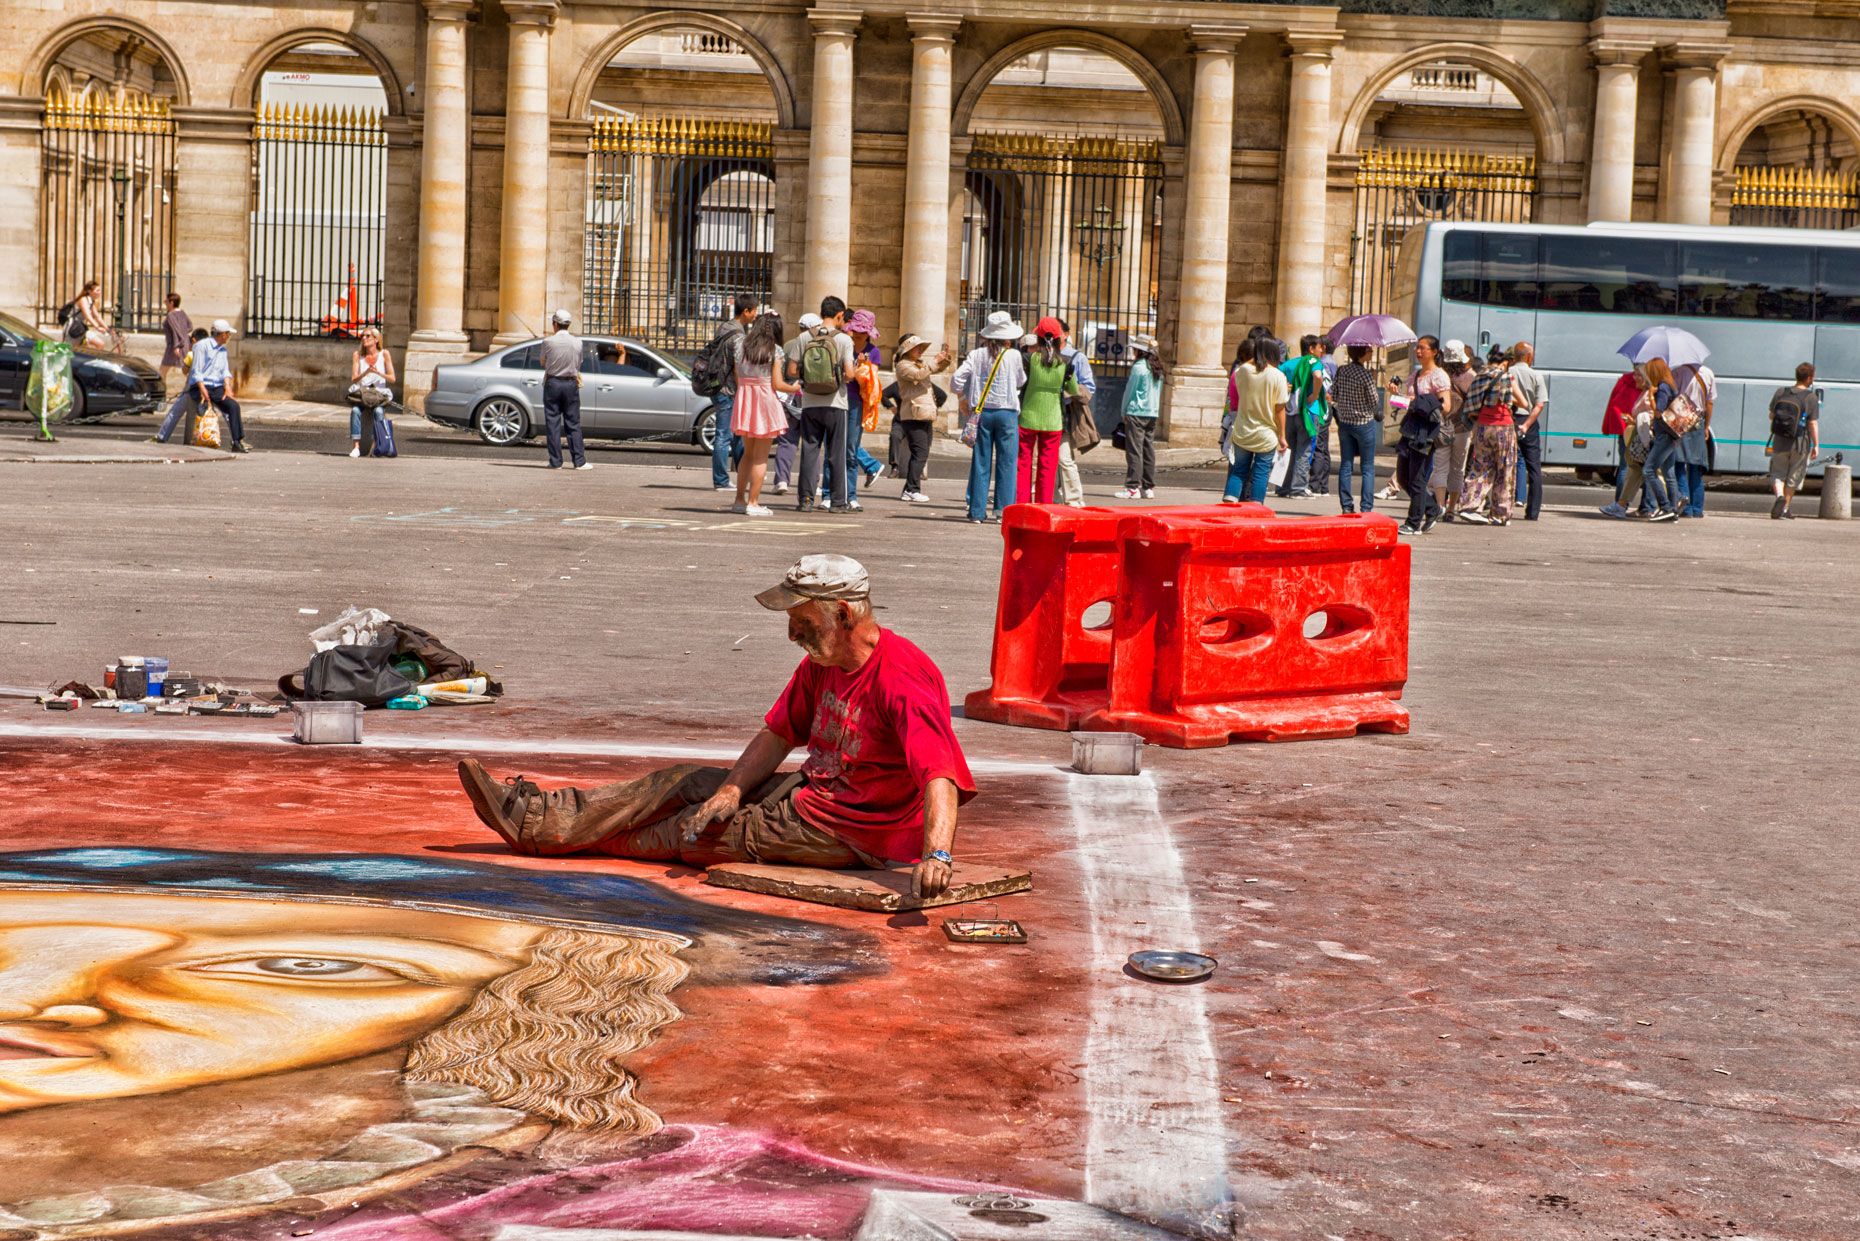 Chalk artist outside Louvre in Paris